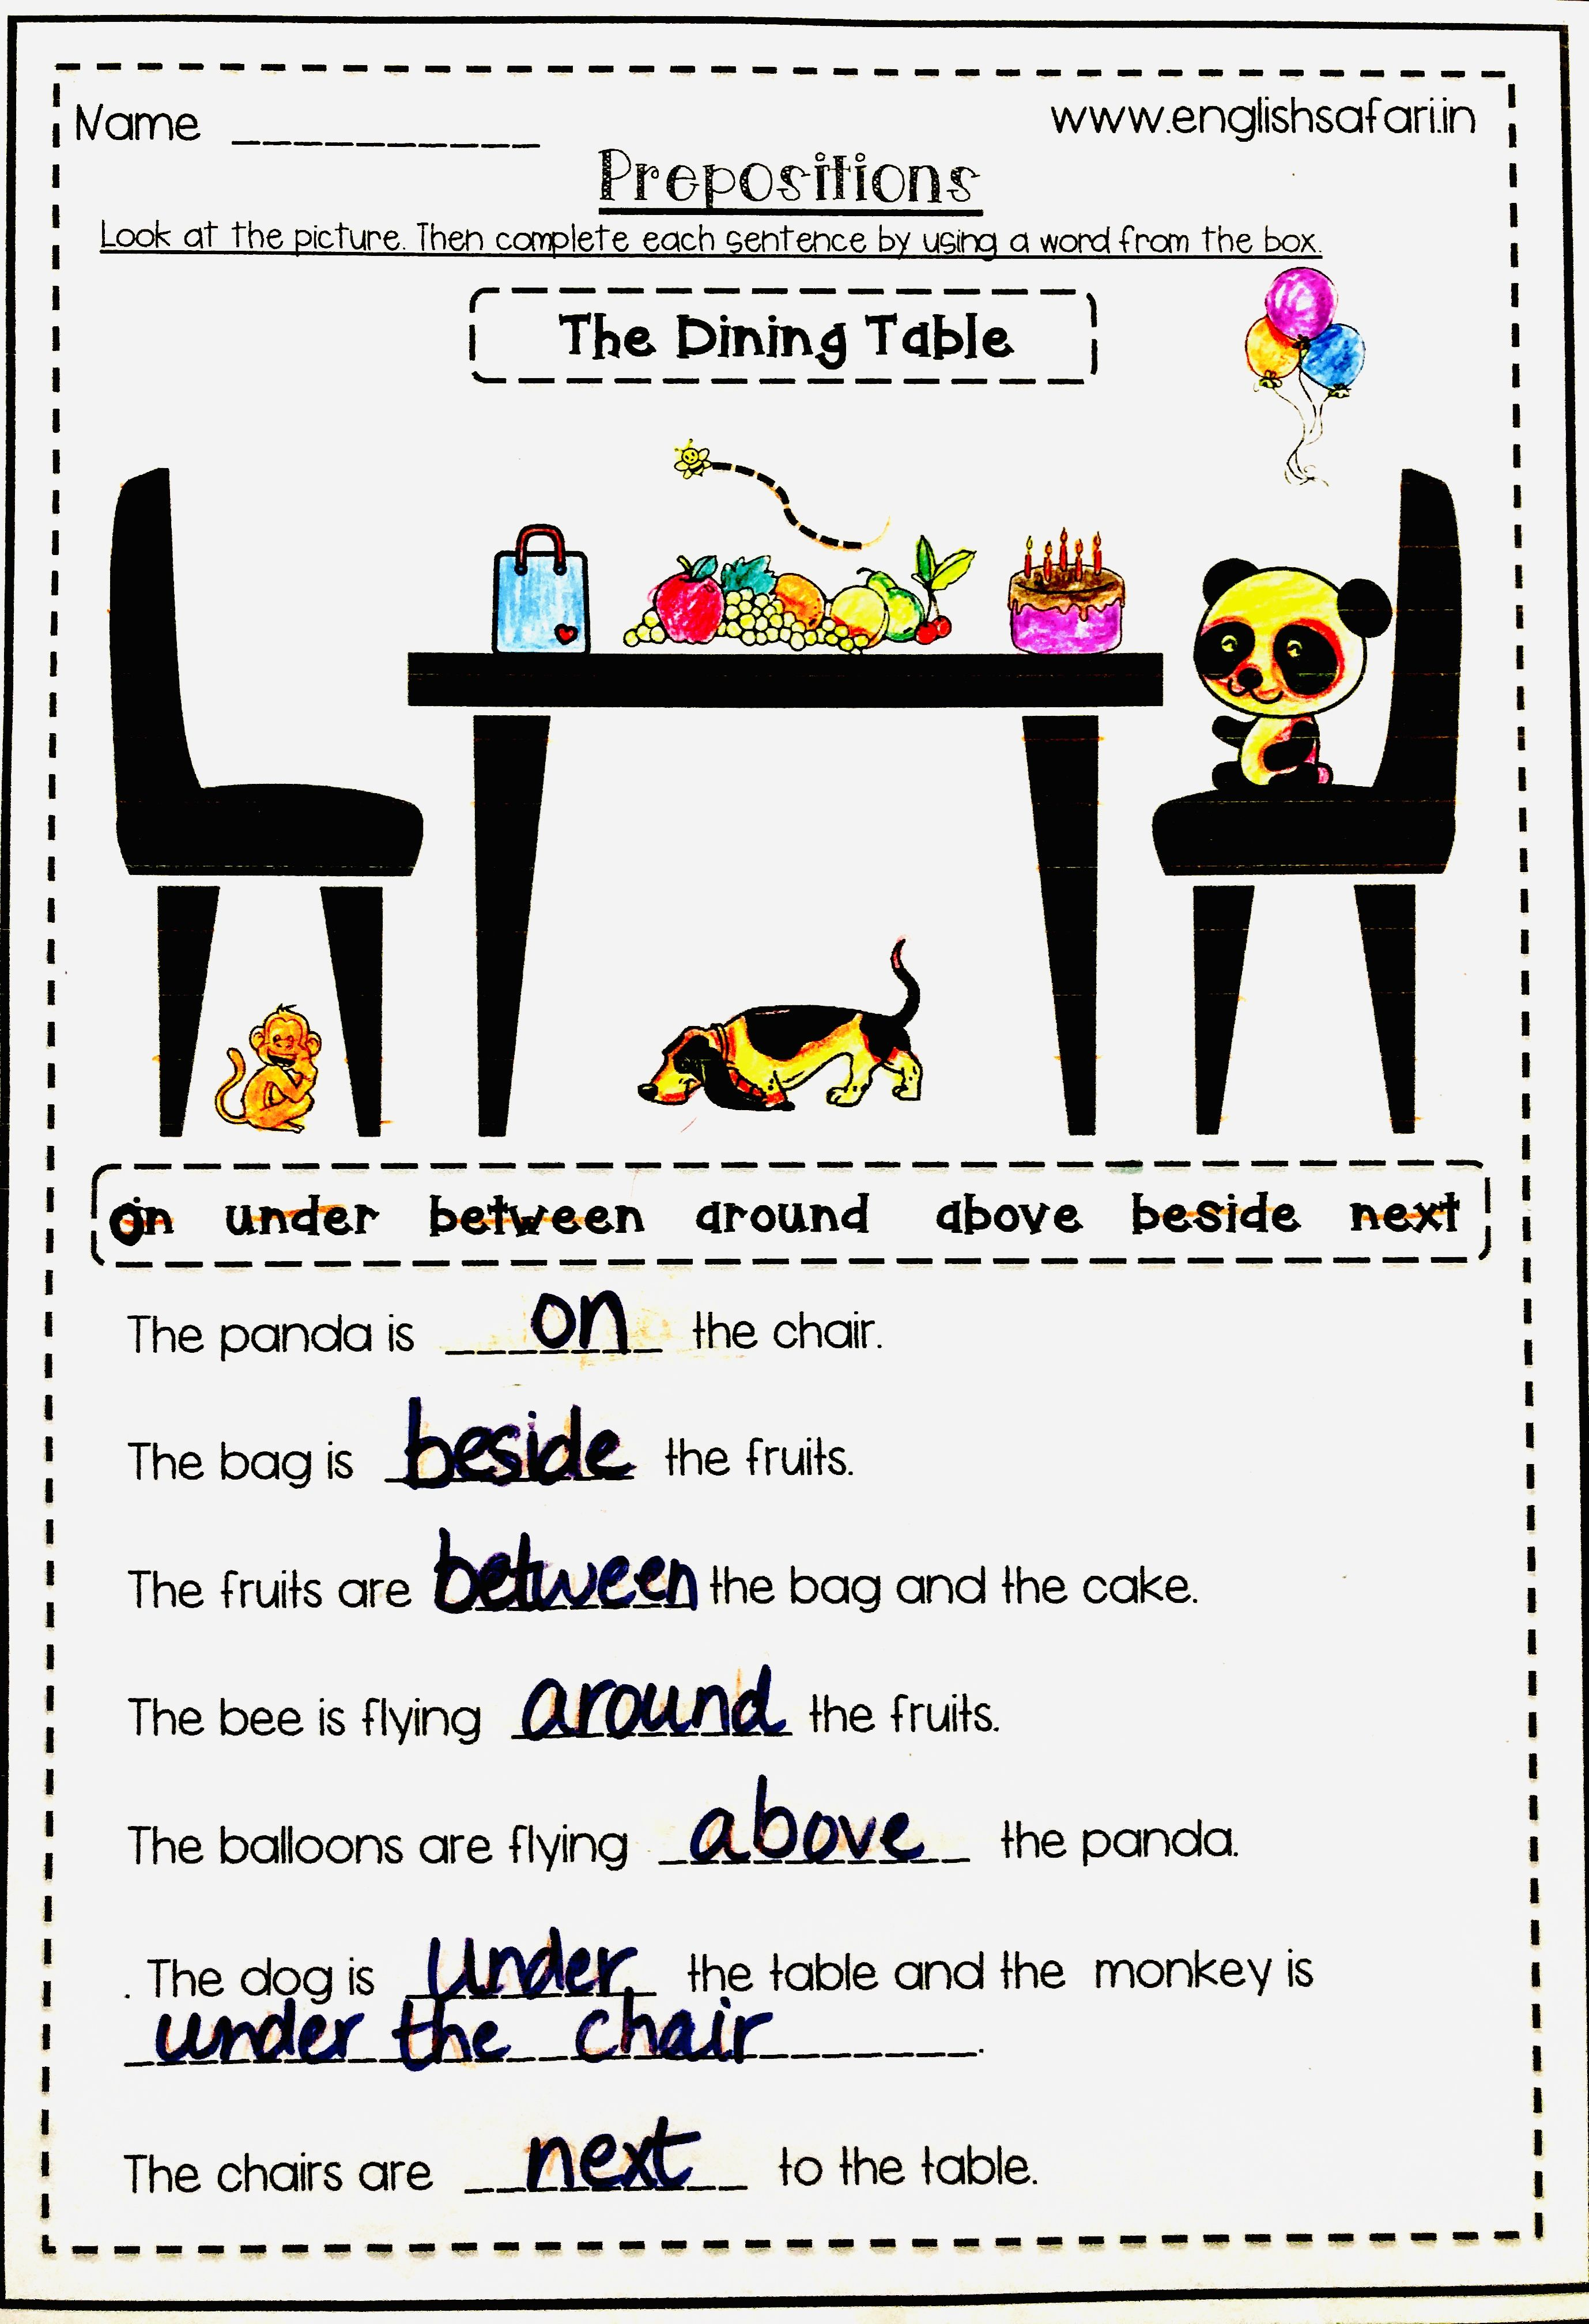 Preposition Worksheets 2nd Grade (With images